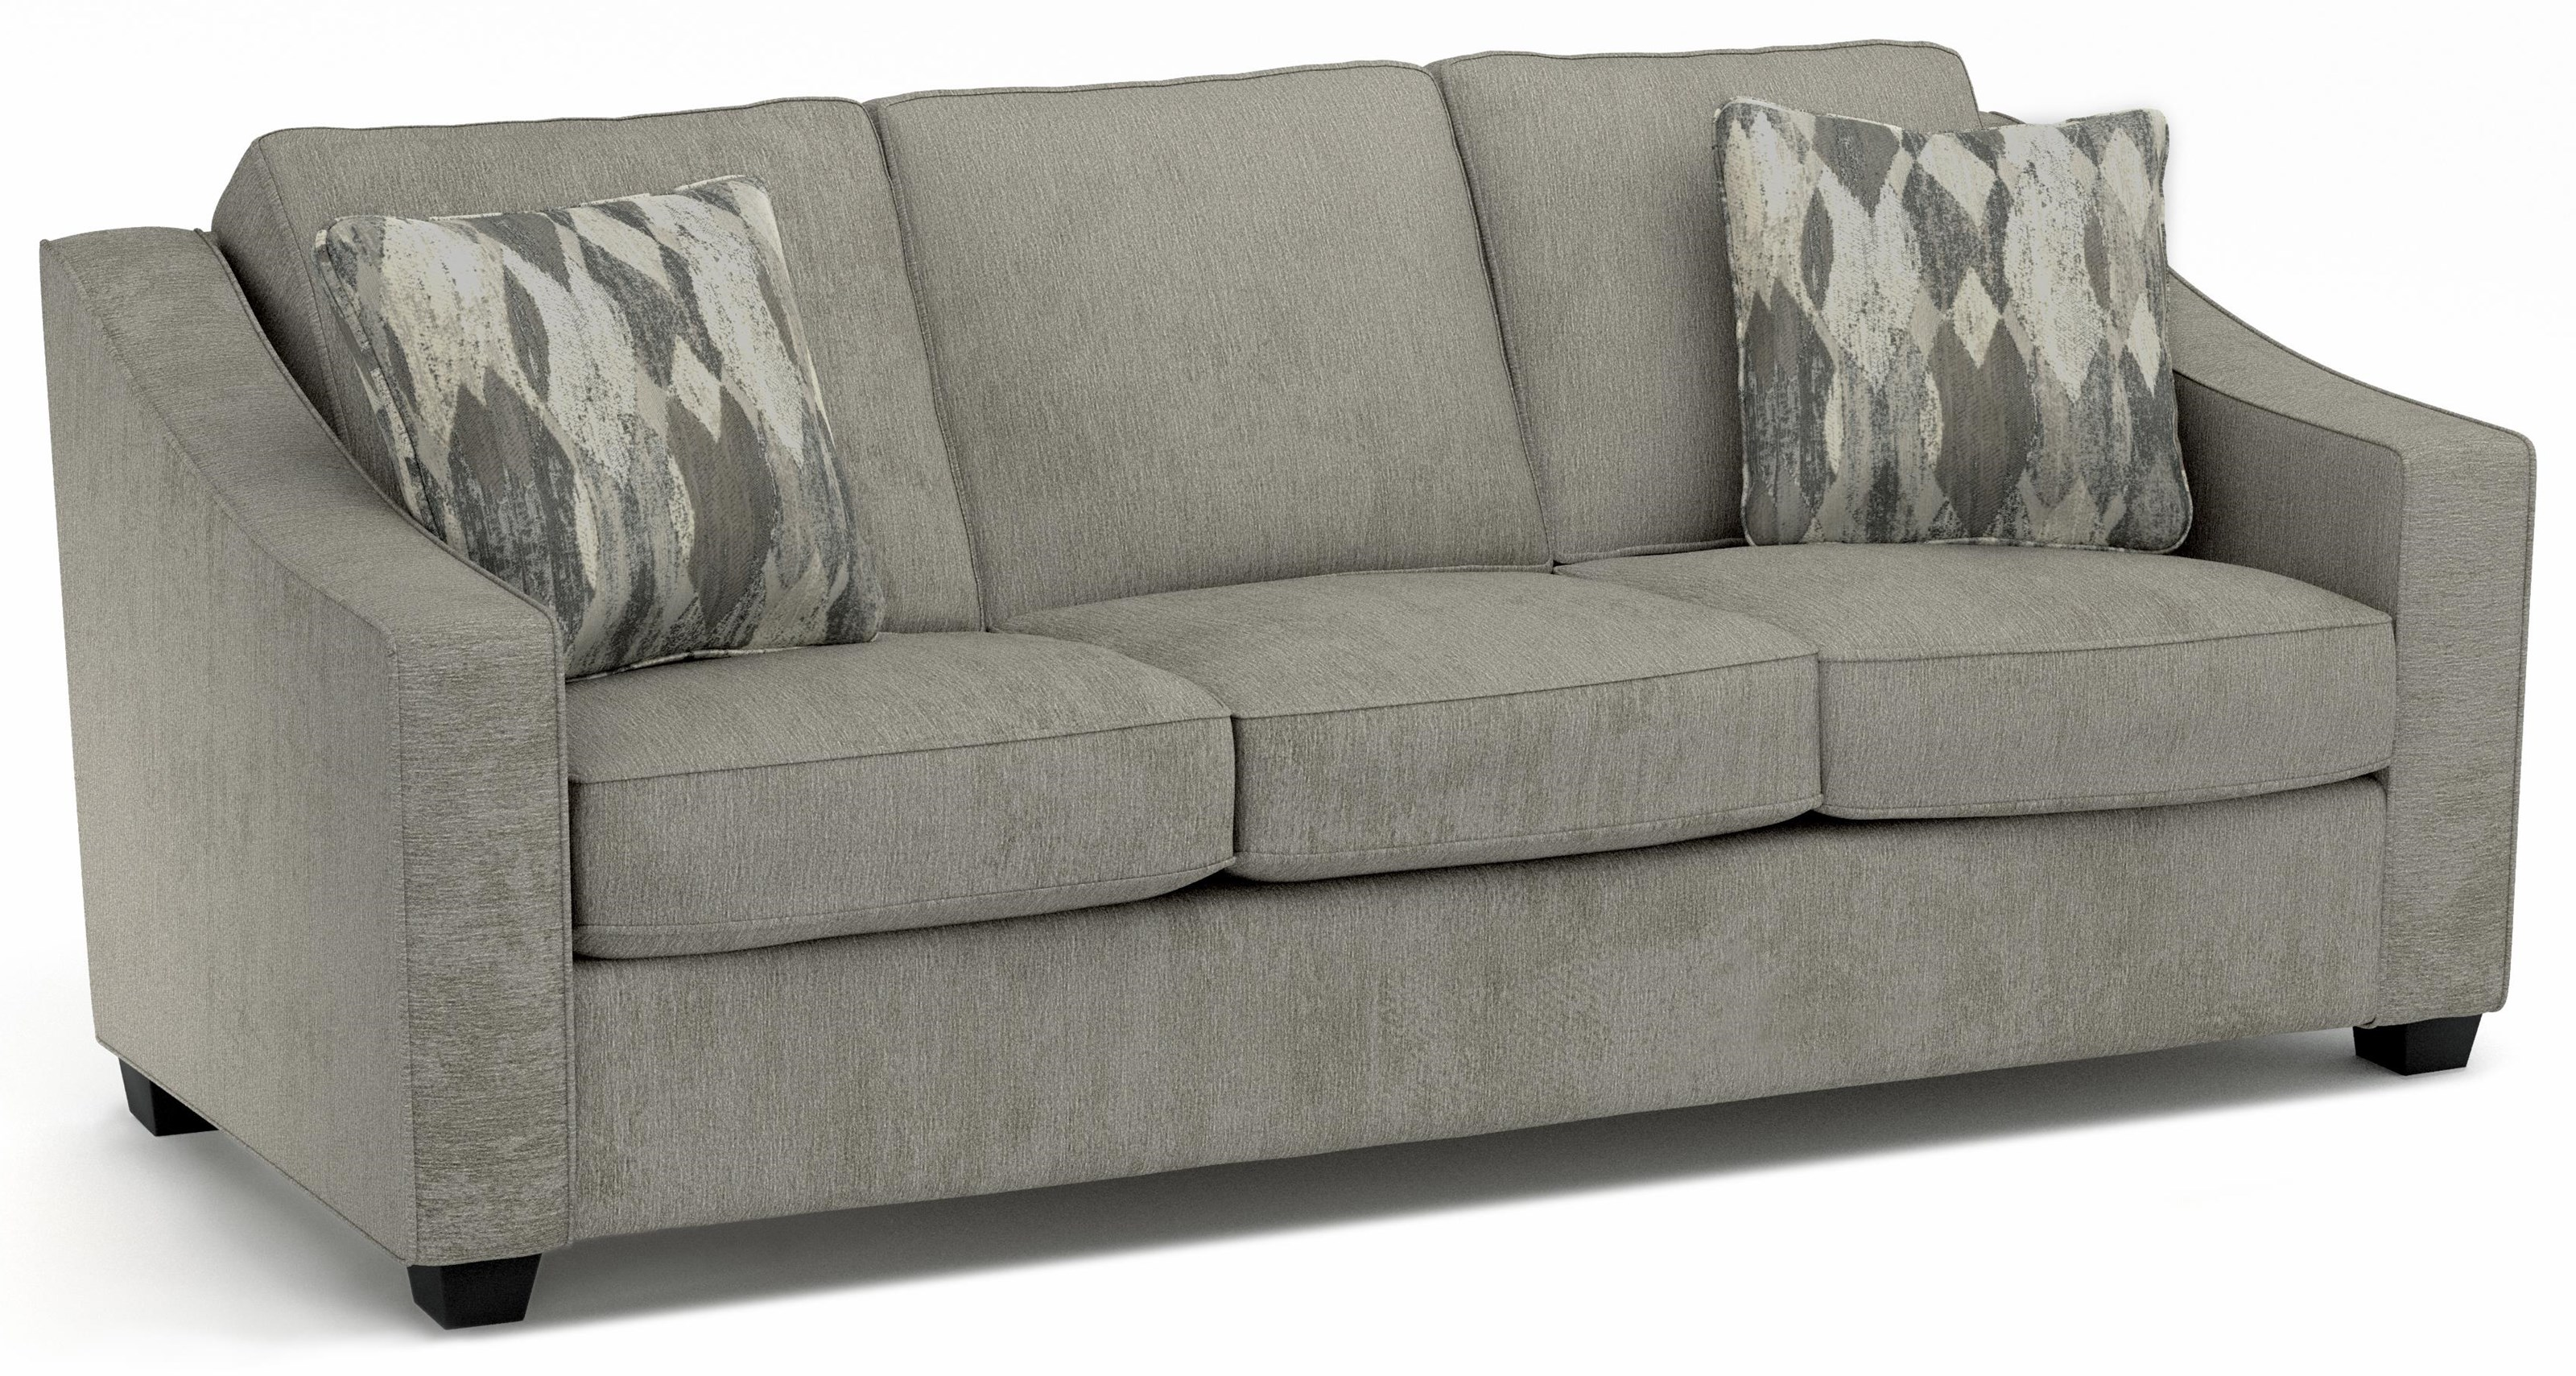 Carlton Sofa by Sunset Home at Walker's Furniture